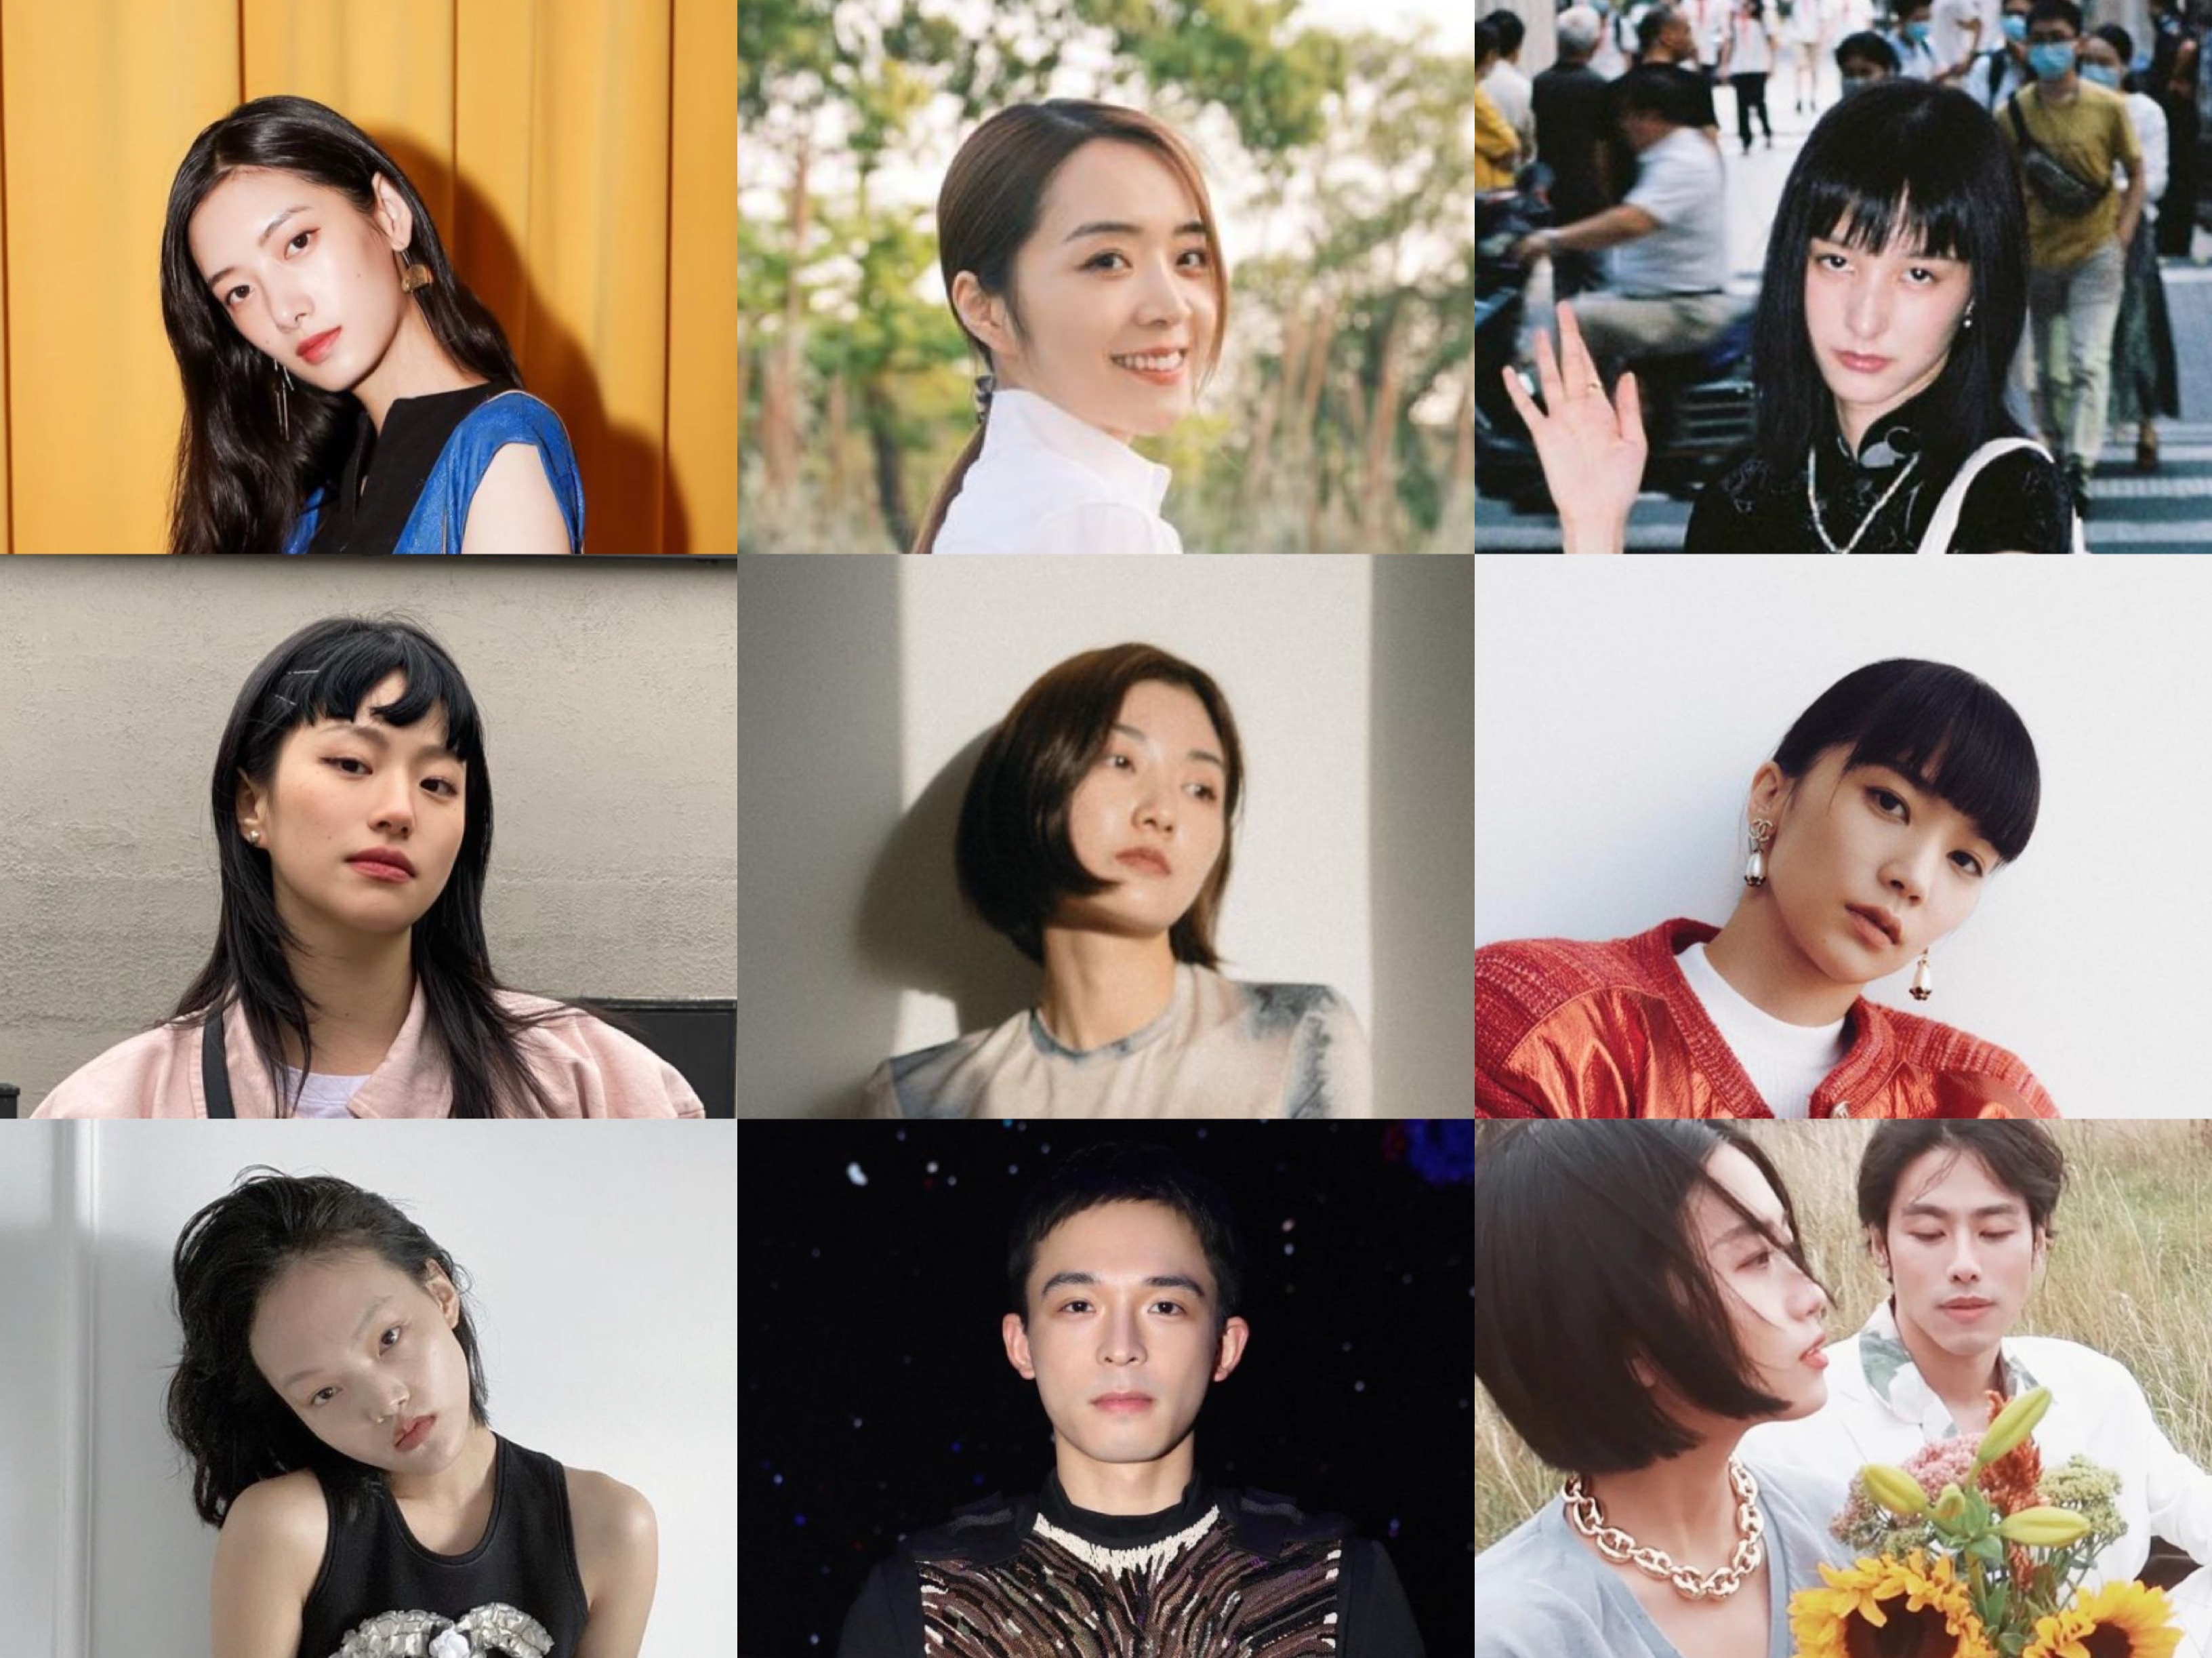 Emerging Chinese fashion influencers. Top row, from left to right, Cici Xiang, Candice Yu, Yueyi Wang. Middle row, from left to right, He Huixiang, Savi Sui, Meng-ke Wu. Bottom row, from left to right, Pan Haowen, Gong Linxuan, Aha Lolo's Meng Zhang and Pablo Zhang.